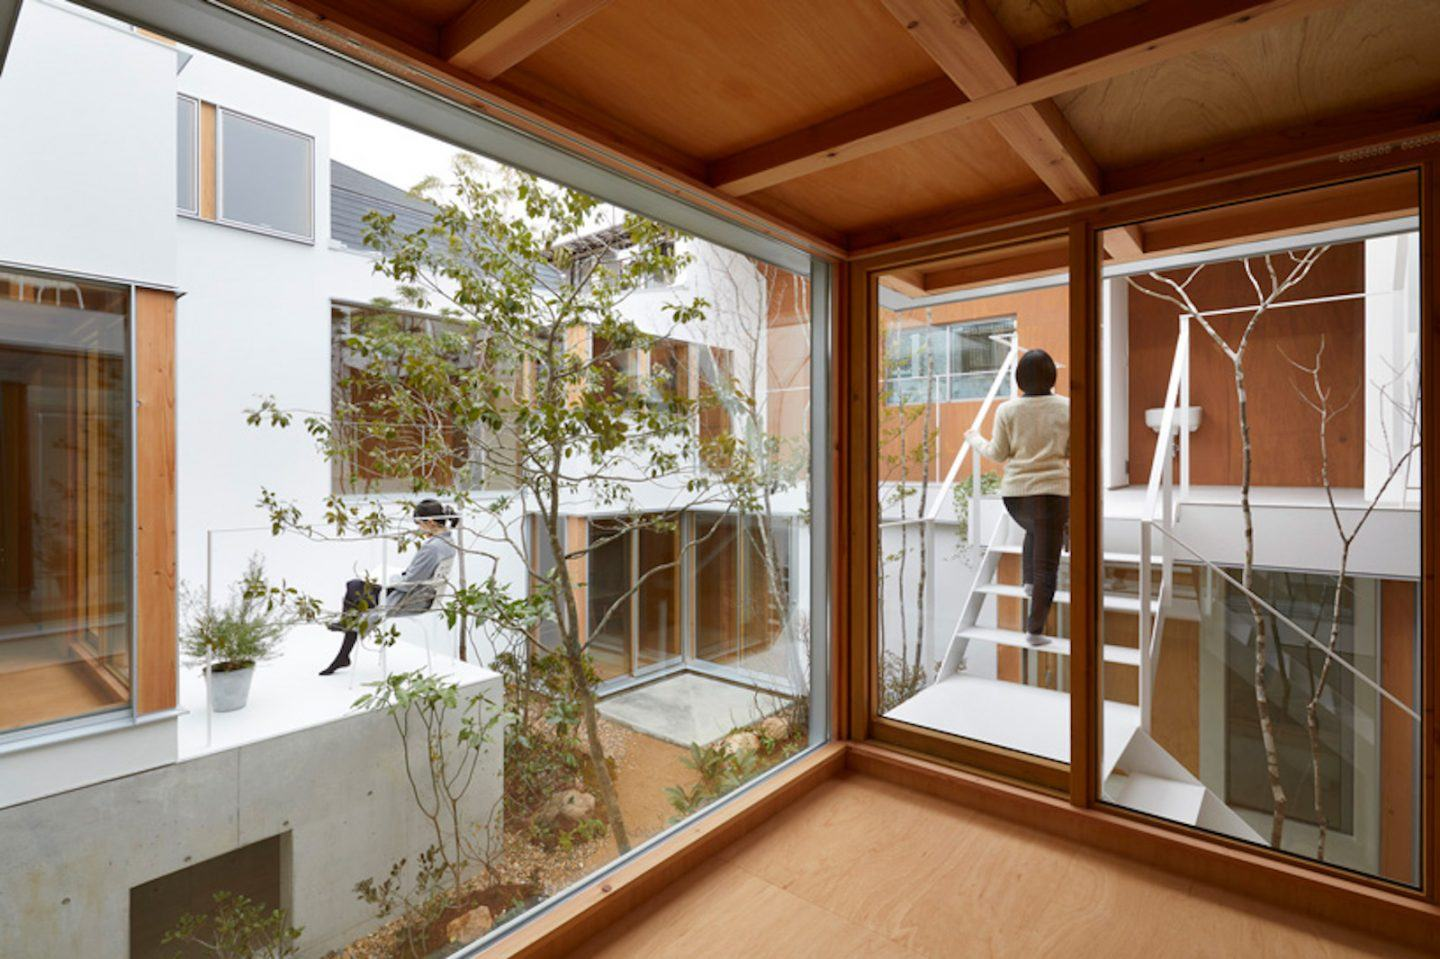 IGNANT-Architecture-Hata-Tomohiro-Loop-Terrace-house-009